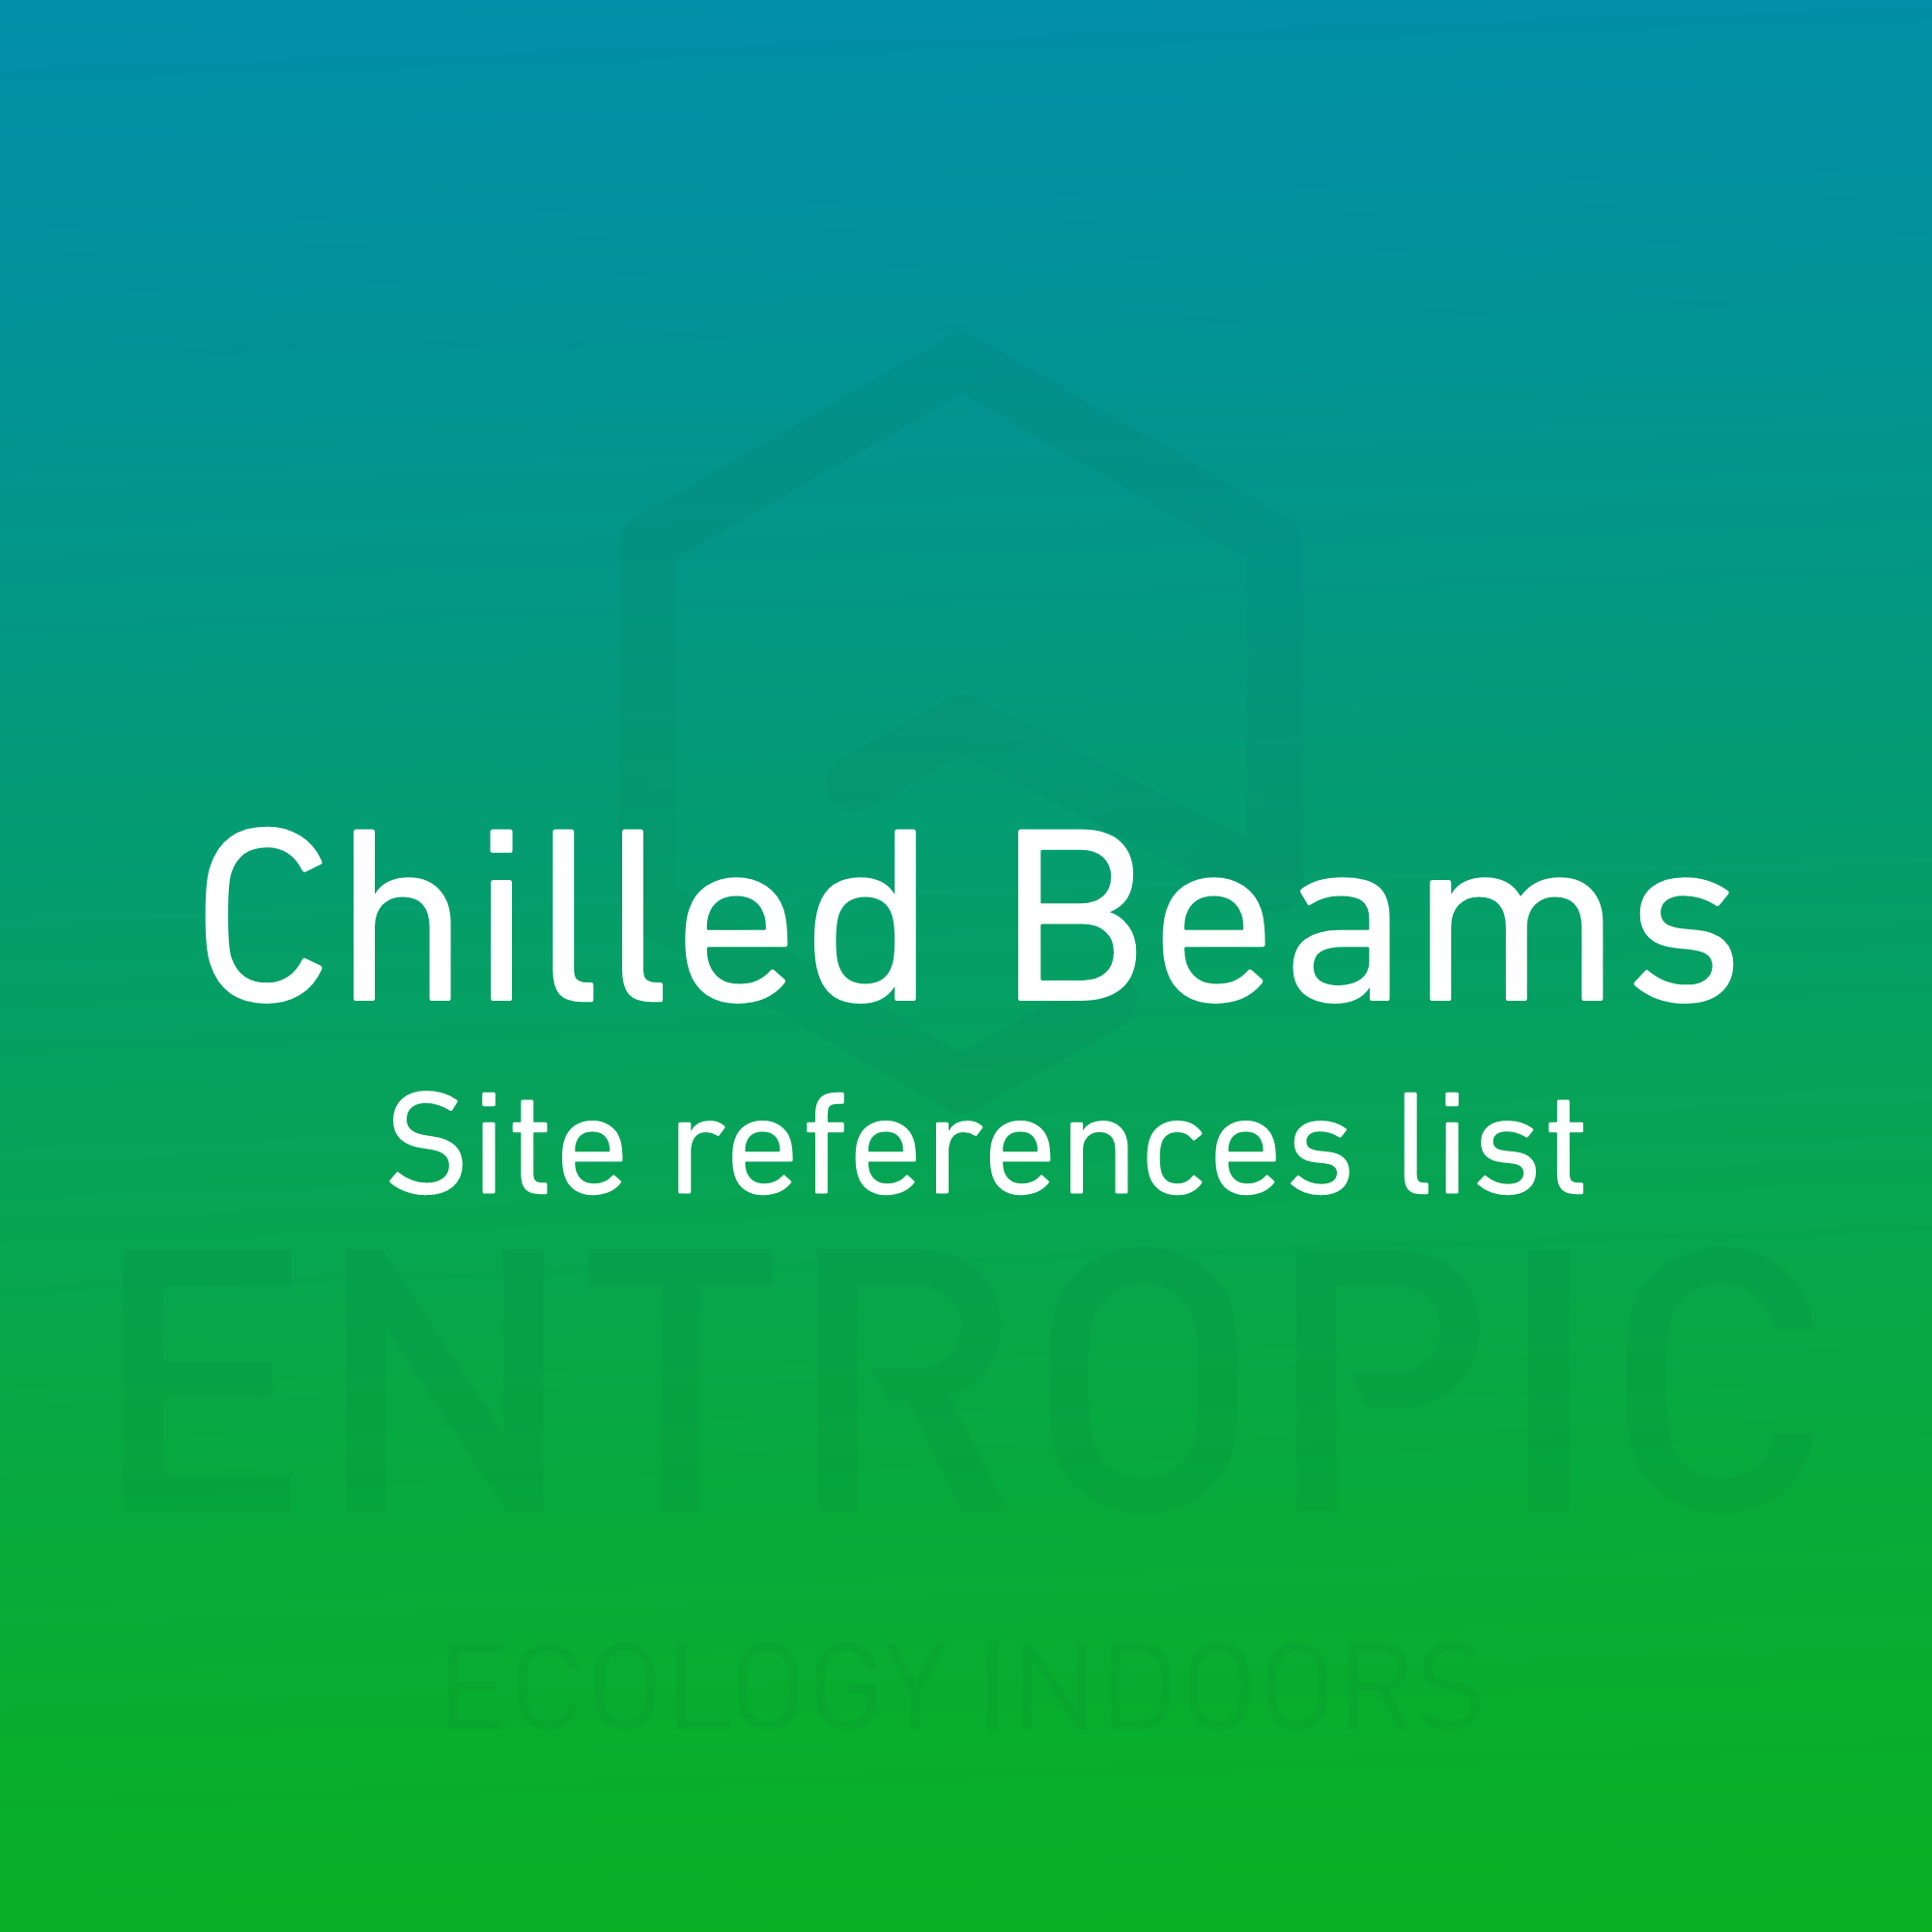 chilled-beams-site-reference-list